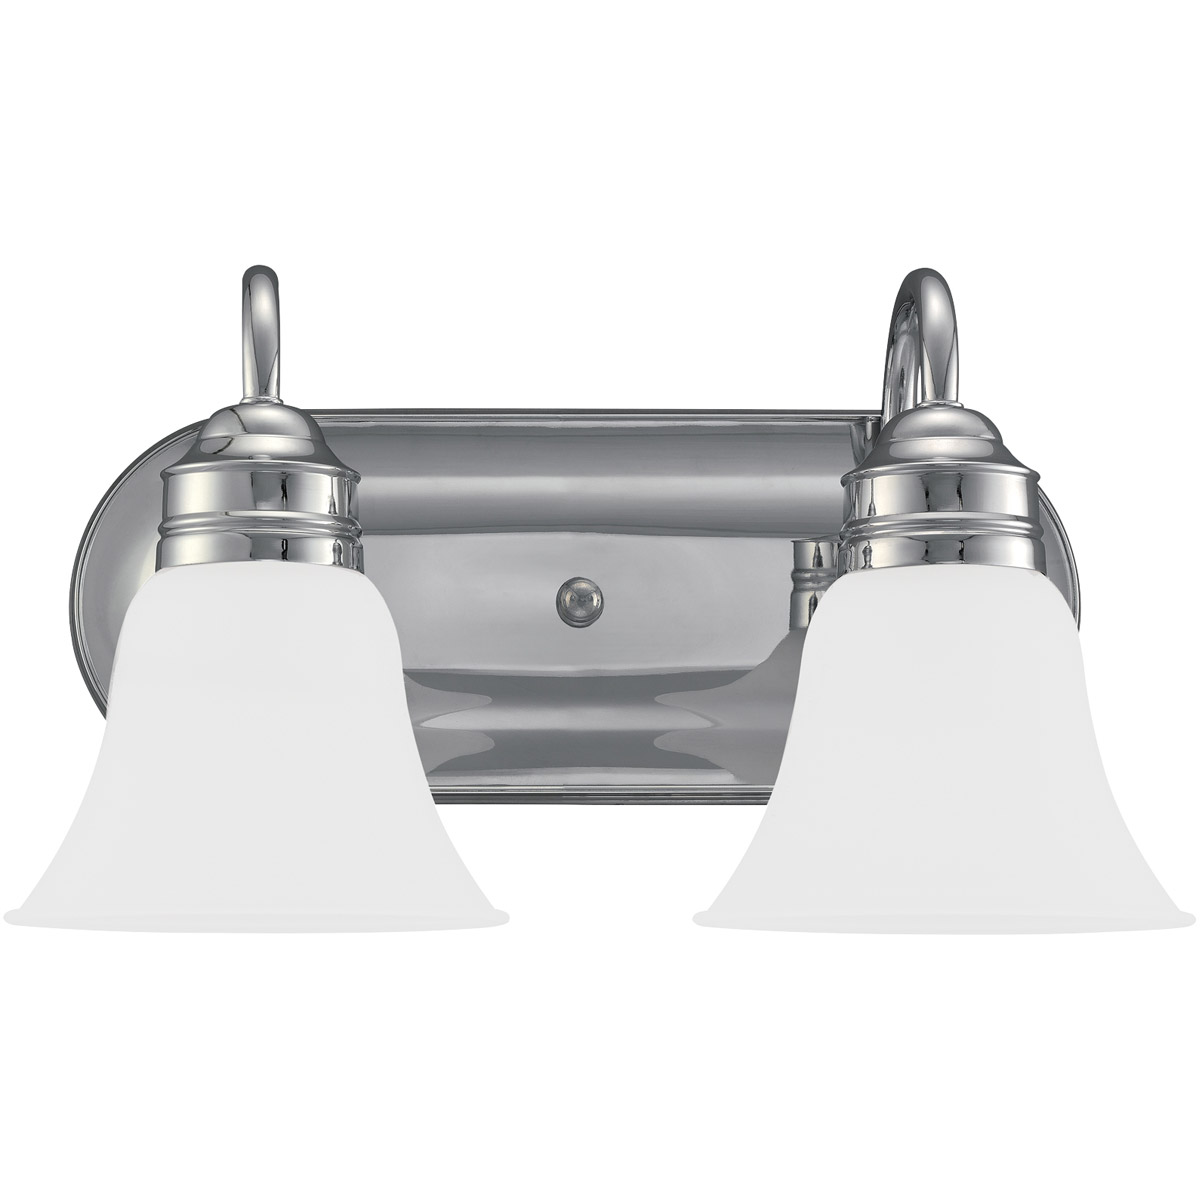 Sea Gull Lighting Gladstone 2 Light Bath Vanity in Chrome 44851-05